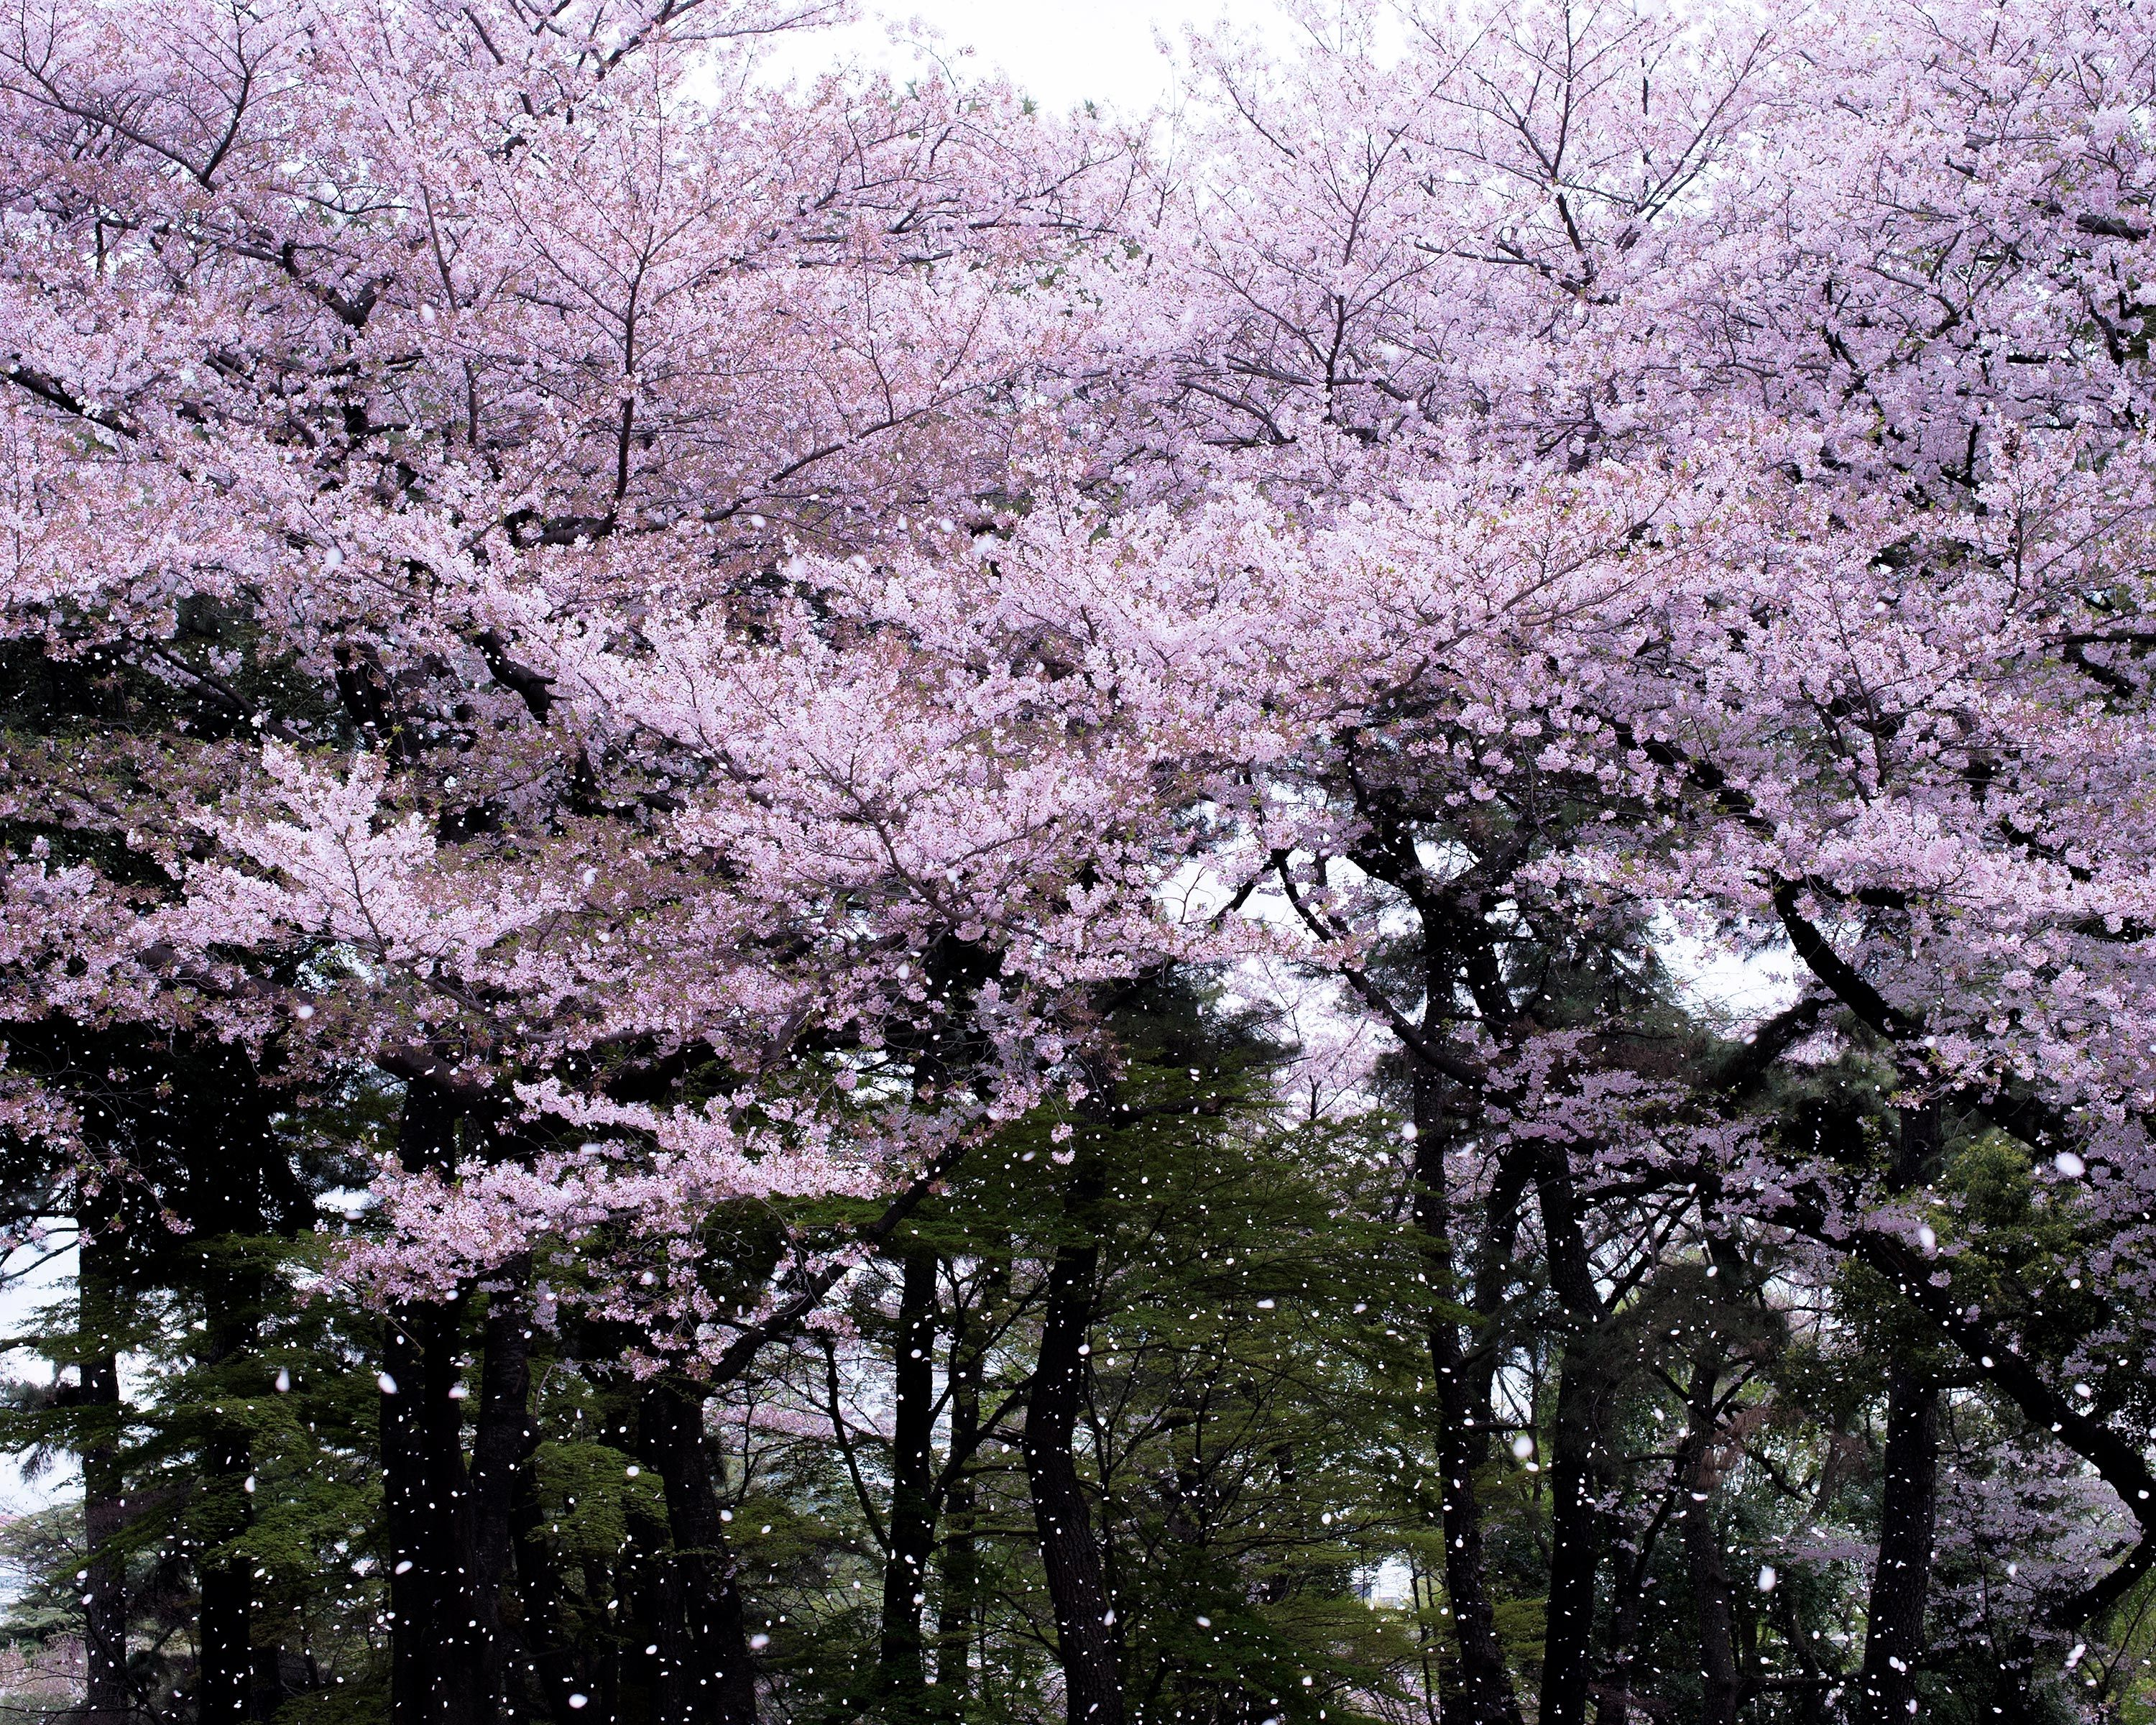 Embrace Spring With Pictures Of Japan S Cherry Blossoms Cherry Blossom Petals Cherry Blossom Flowers Japan Cherry Blossom Festival